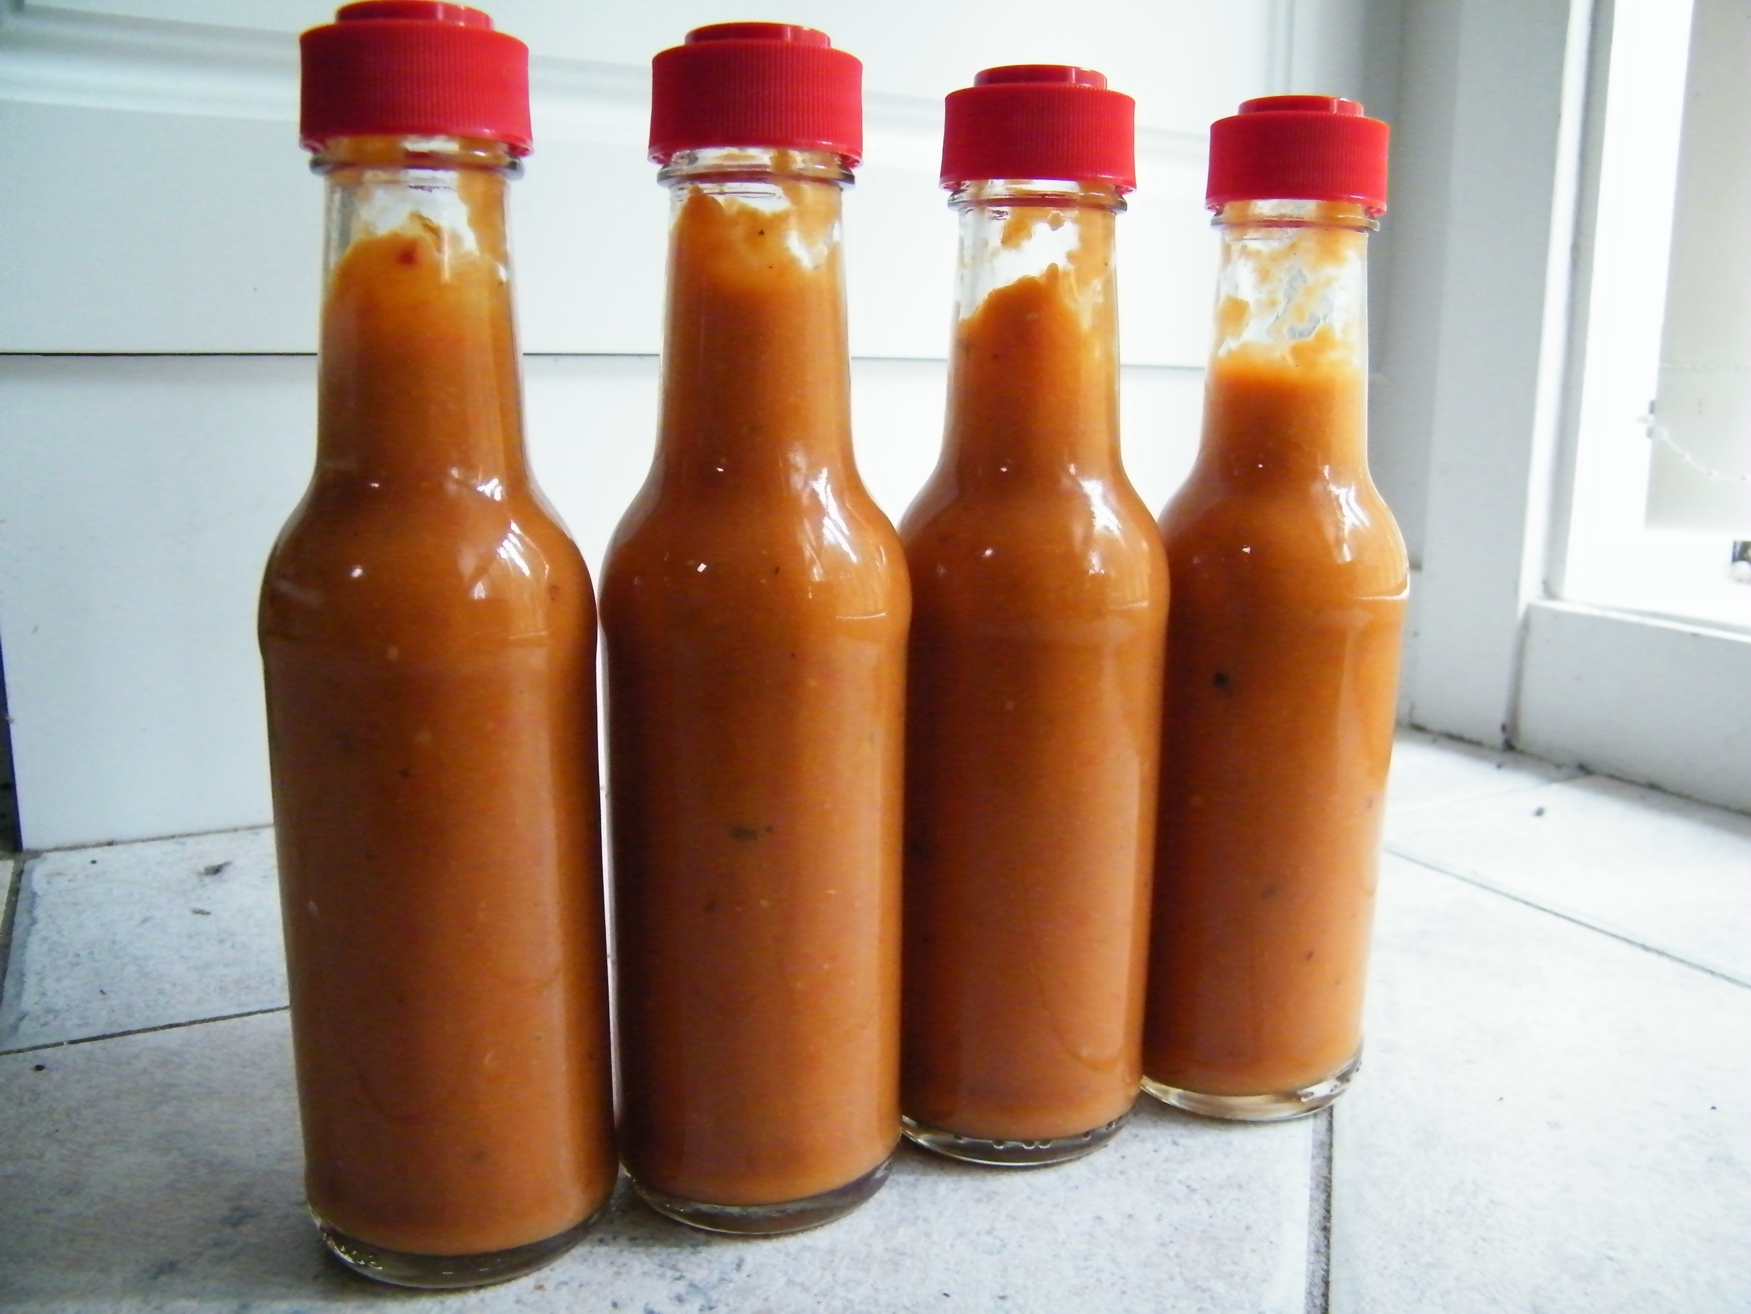 Dorset Naga Hot Sauce recipe | Homemade Hot Chili Sauce Recipes